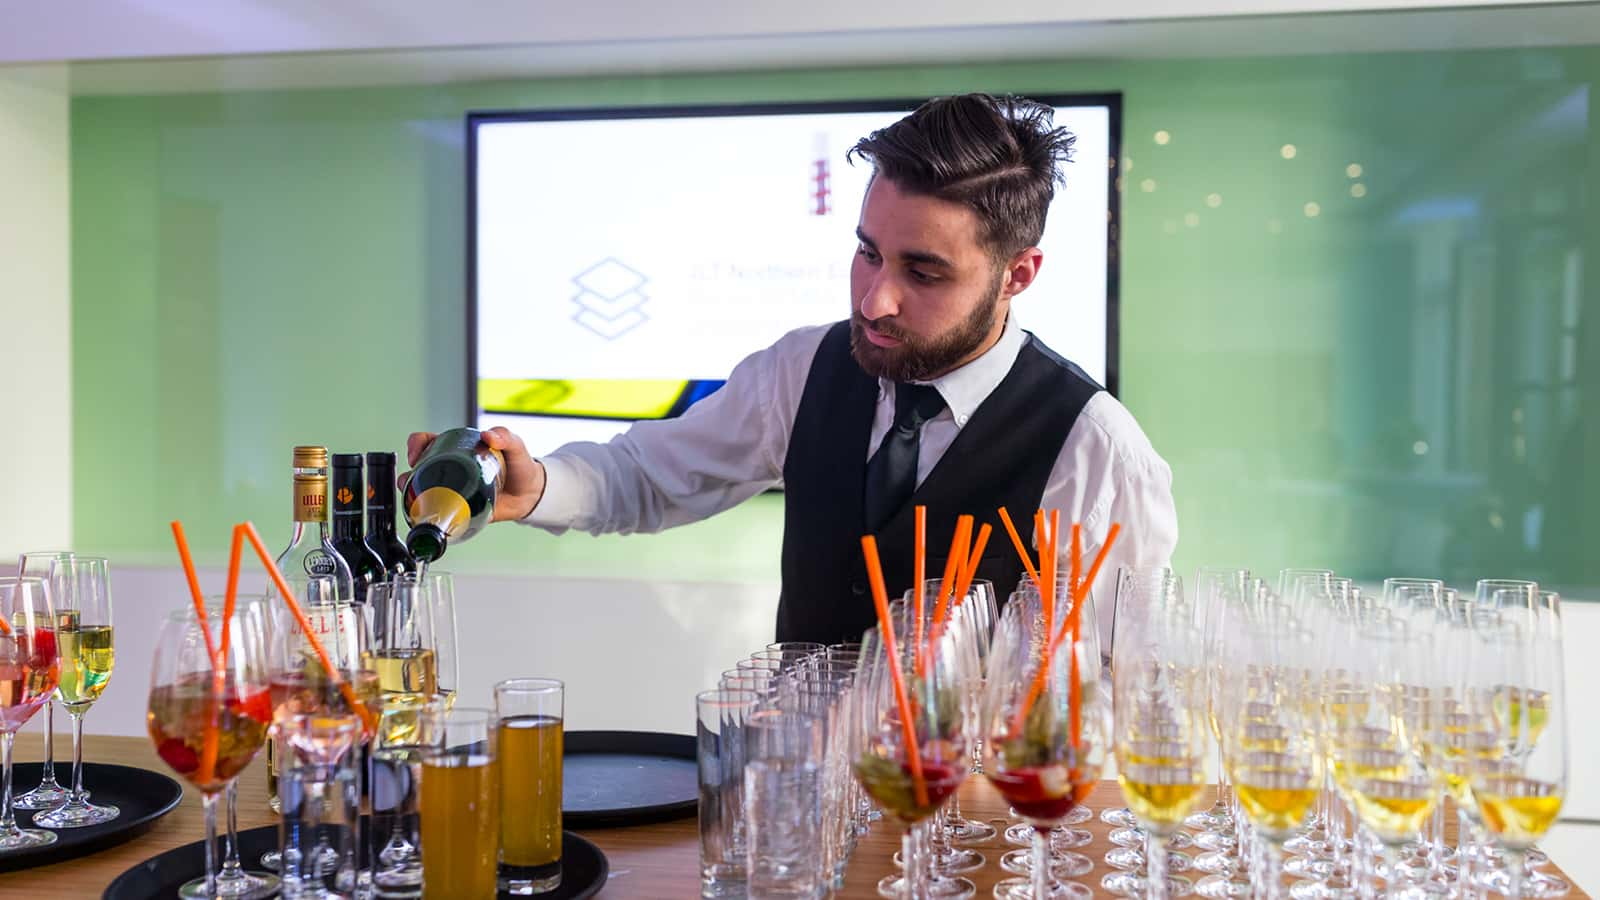 Catering Frankfurt. Catering Service | FLOW THE KITCHEN